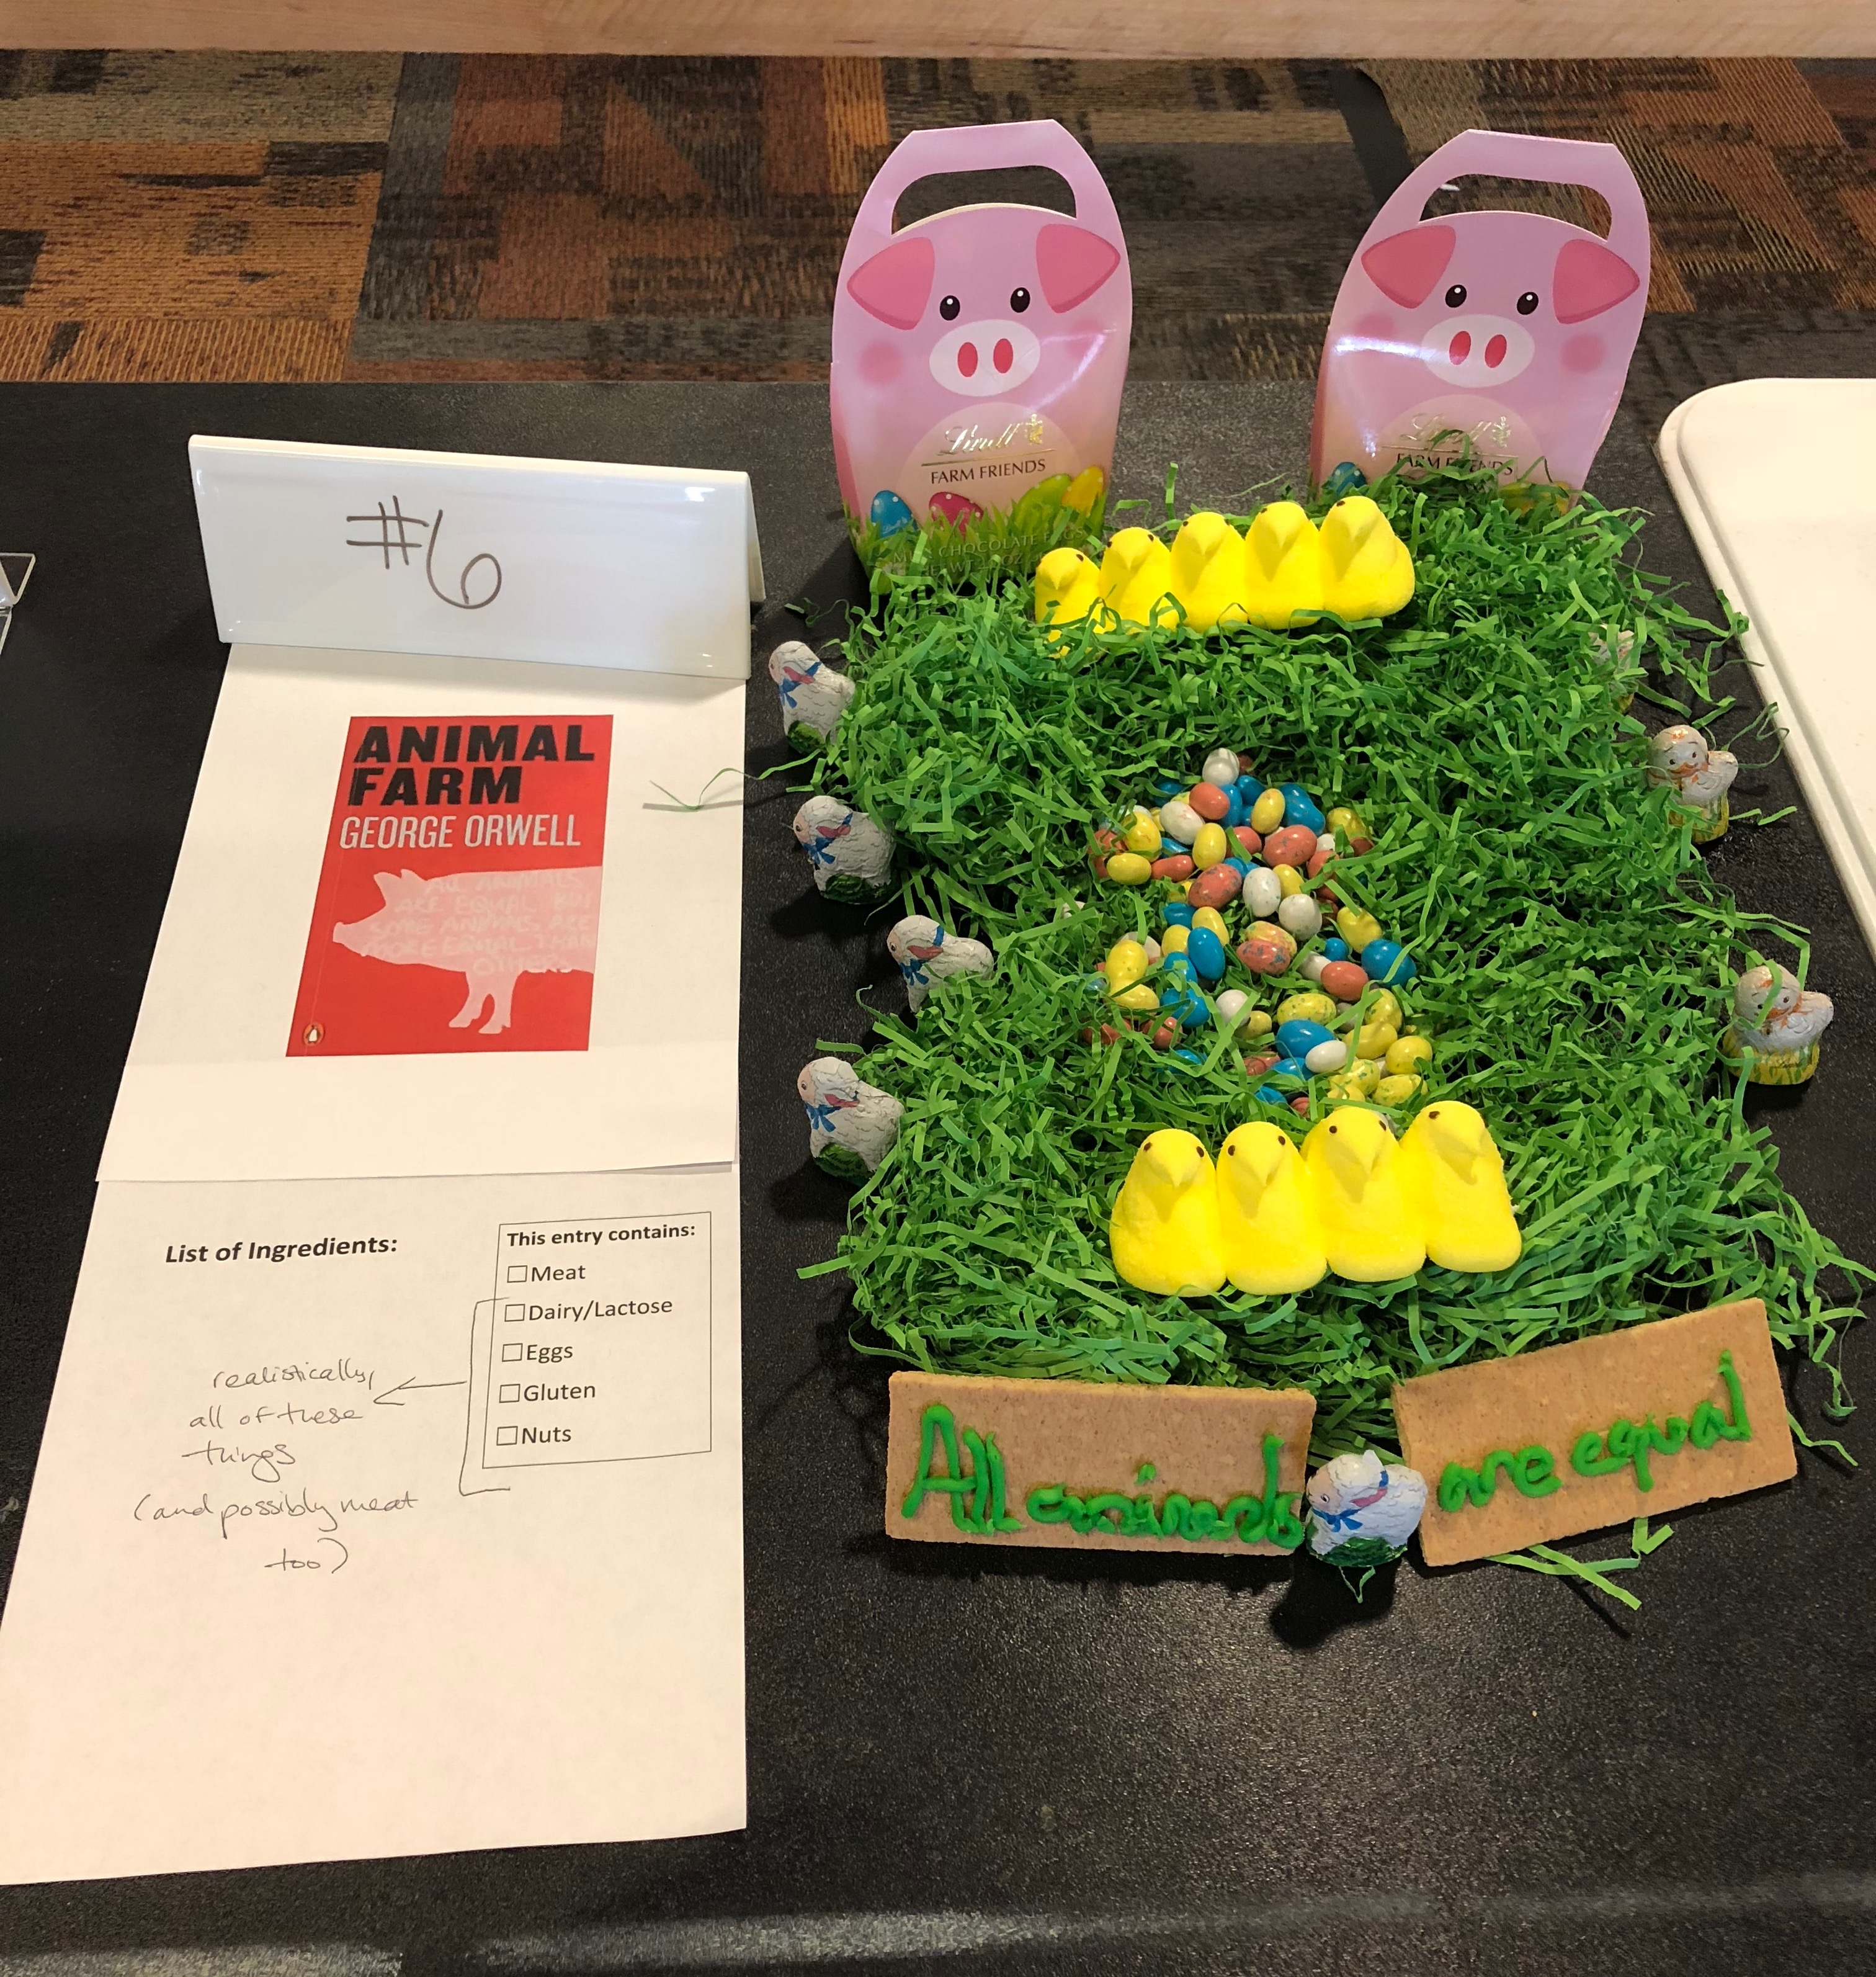 This tribute to George Orwell's Animal Farm includes a bed of grass adorned by peeps, jelly beans eggs, and chocolate pigs, lambs, and chickens. The pigs are several times larger than all the other animals.